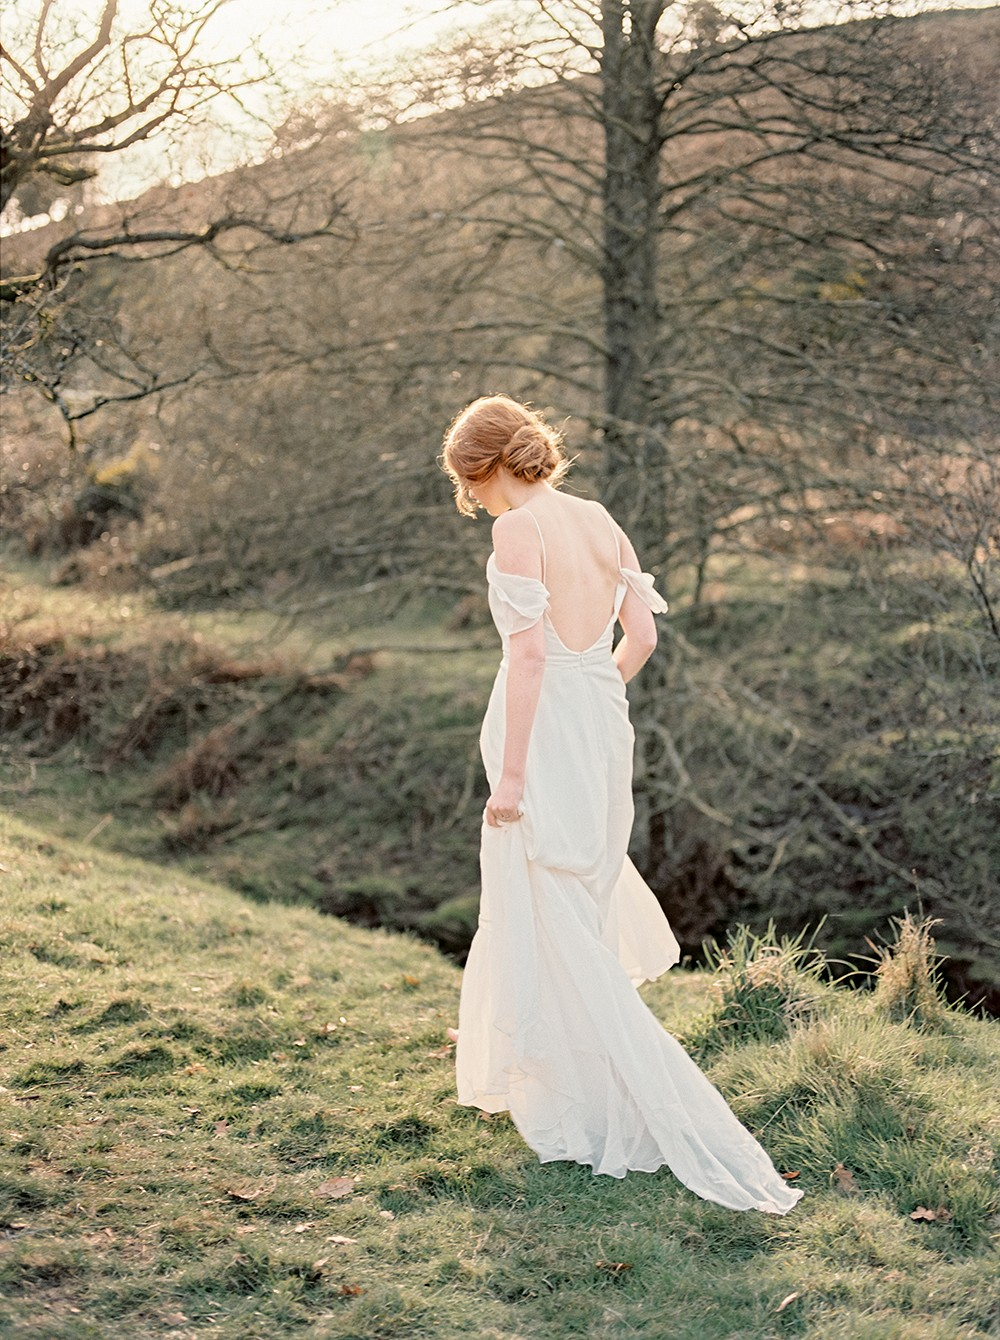 Wild Beauty Wandering: Elopement in the Moors